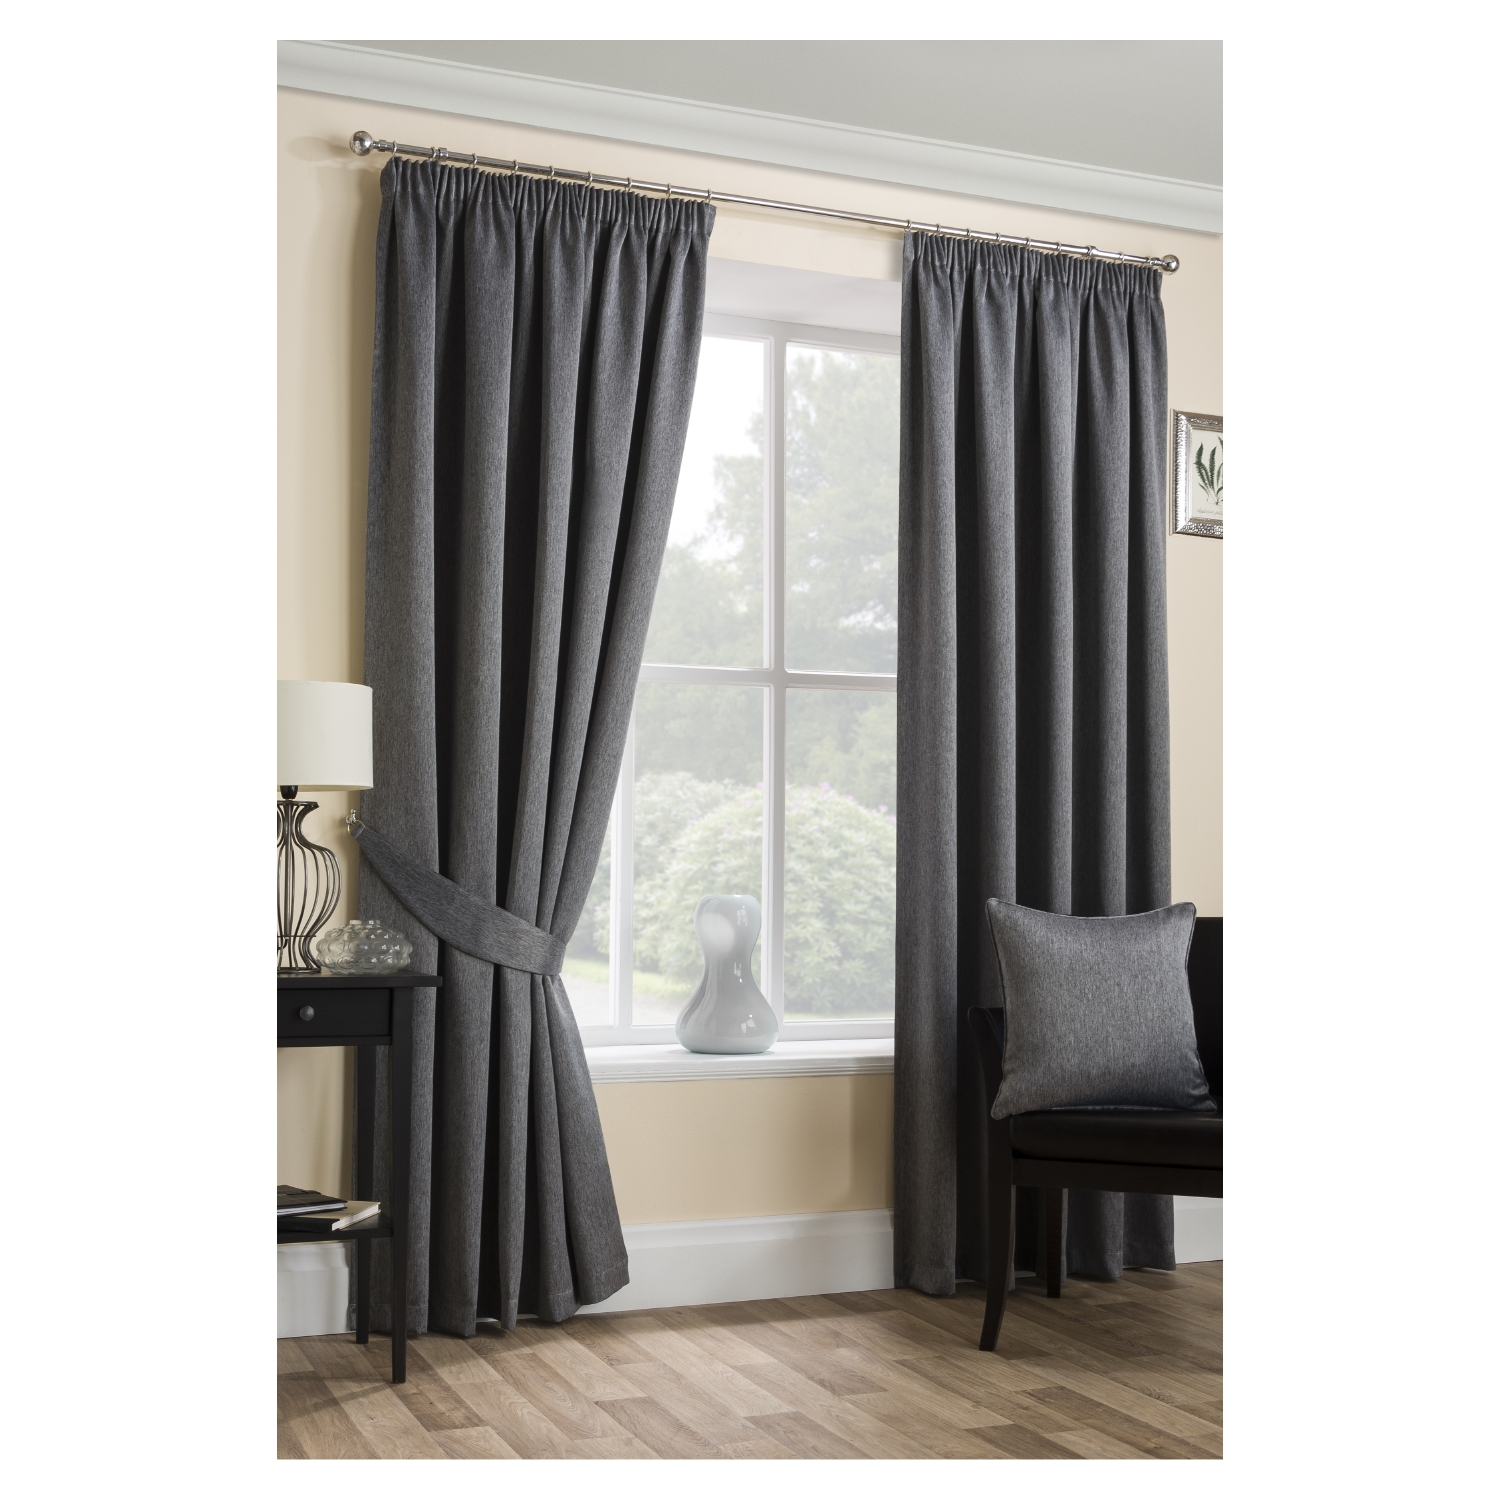 Cheap Blackout Curtains for Inspiring Home Decorating Ideas: Cheapest Thermal Curtains | Cheap Window Treatments | Cheap Blackout Curtains